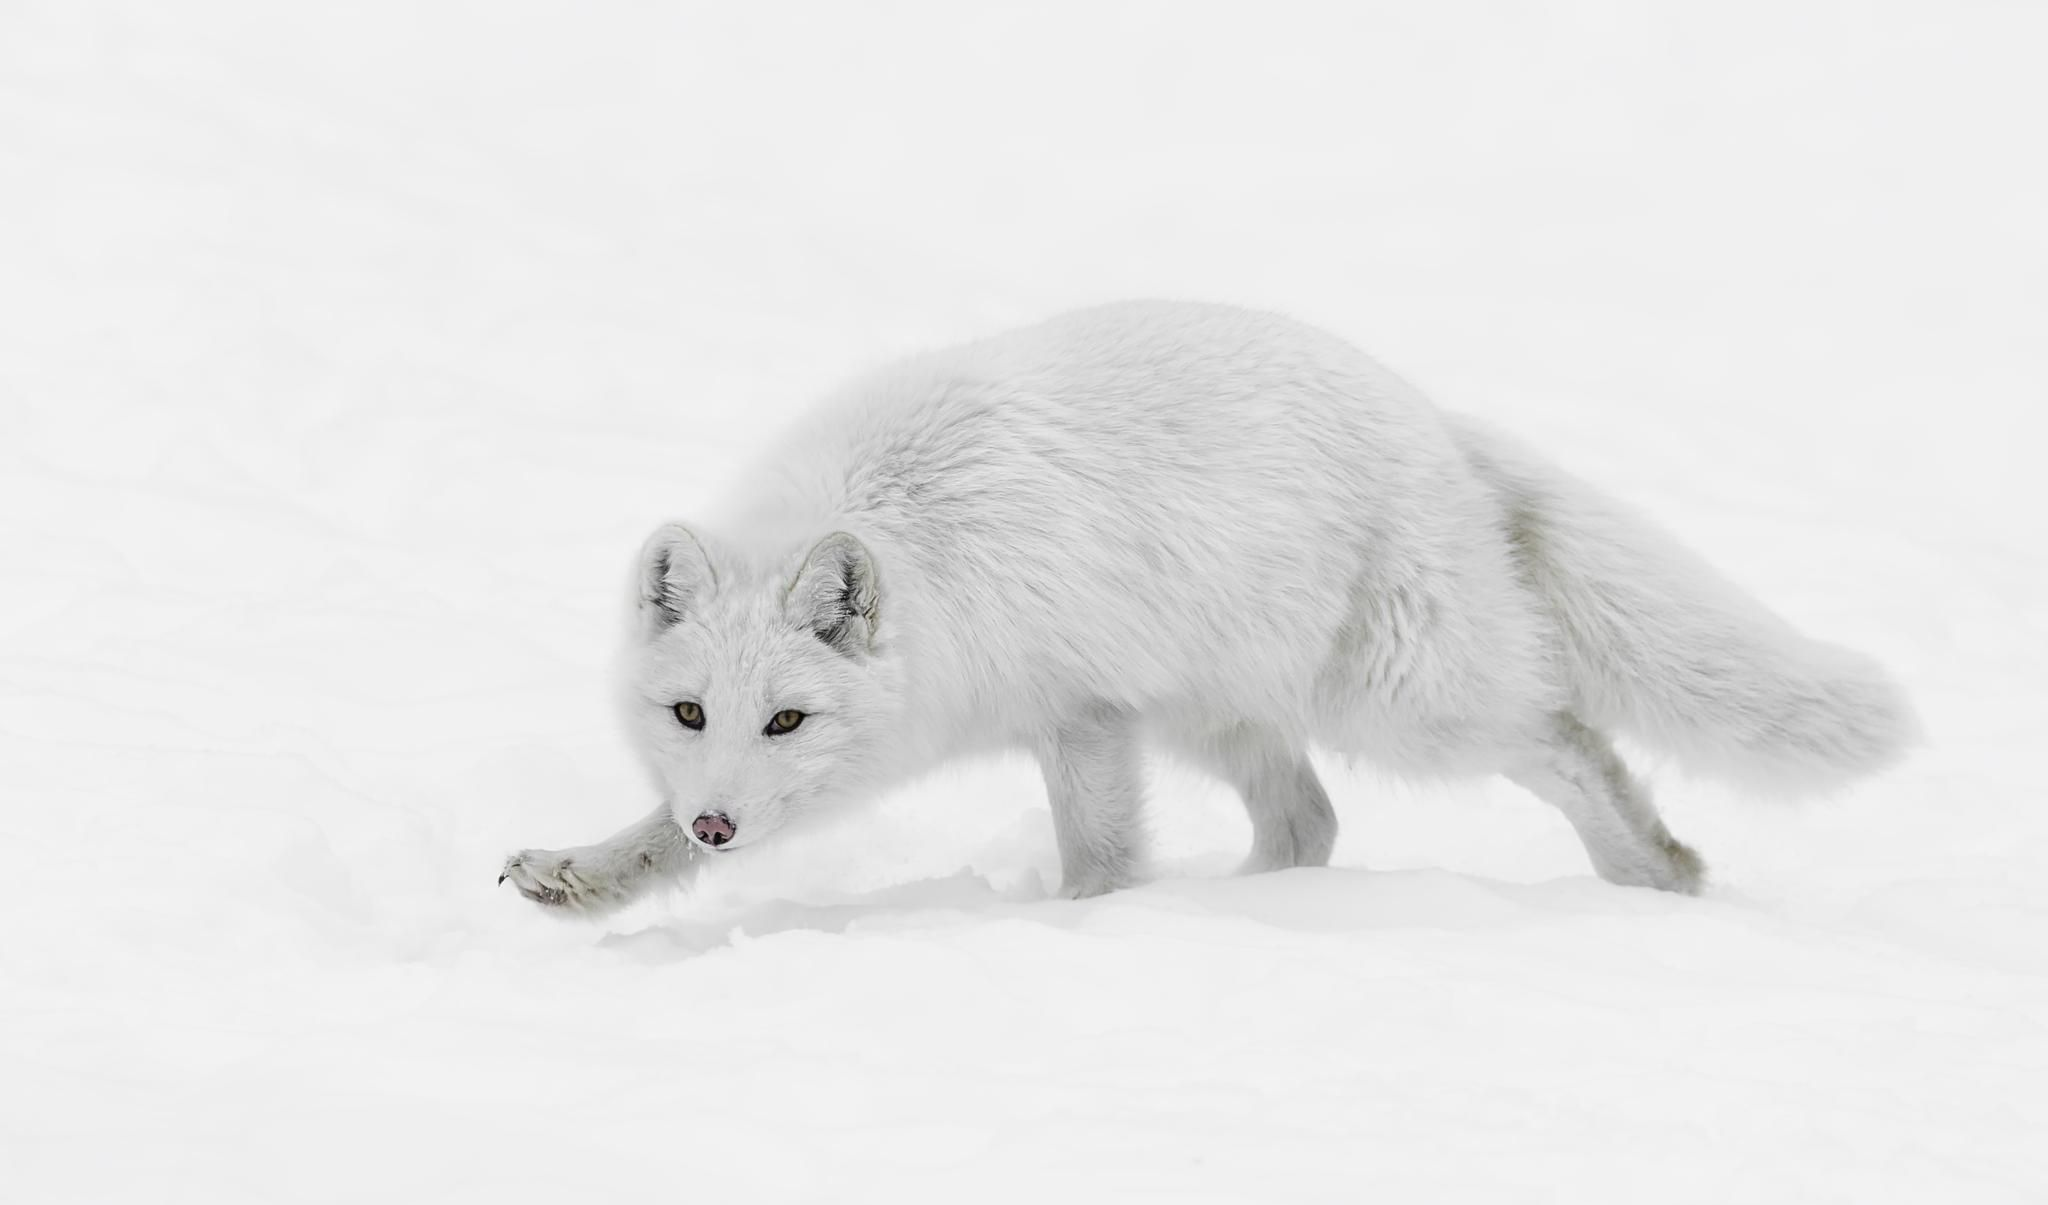 Arctic Fox Wallpaper | 2048x1205 | ID:53368 - WallpaperVortex.com